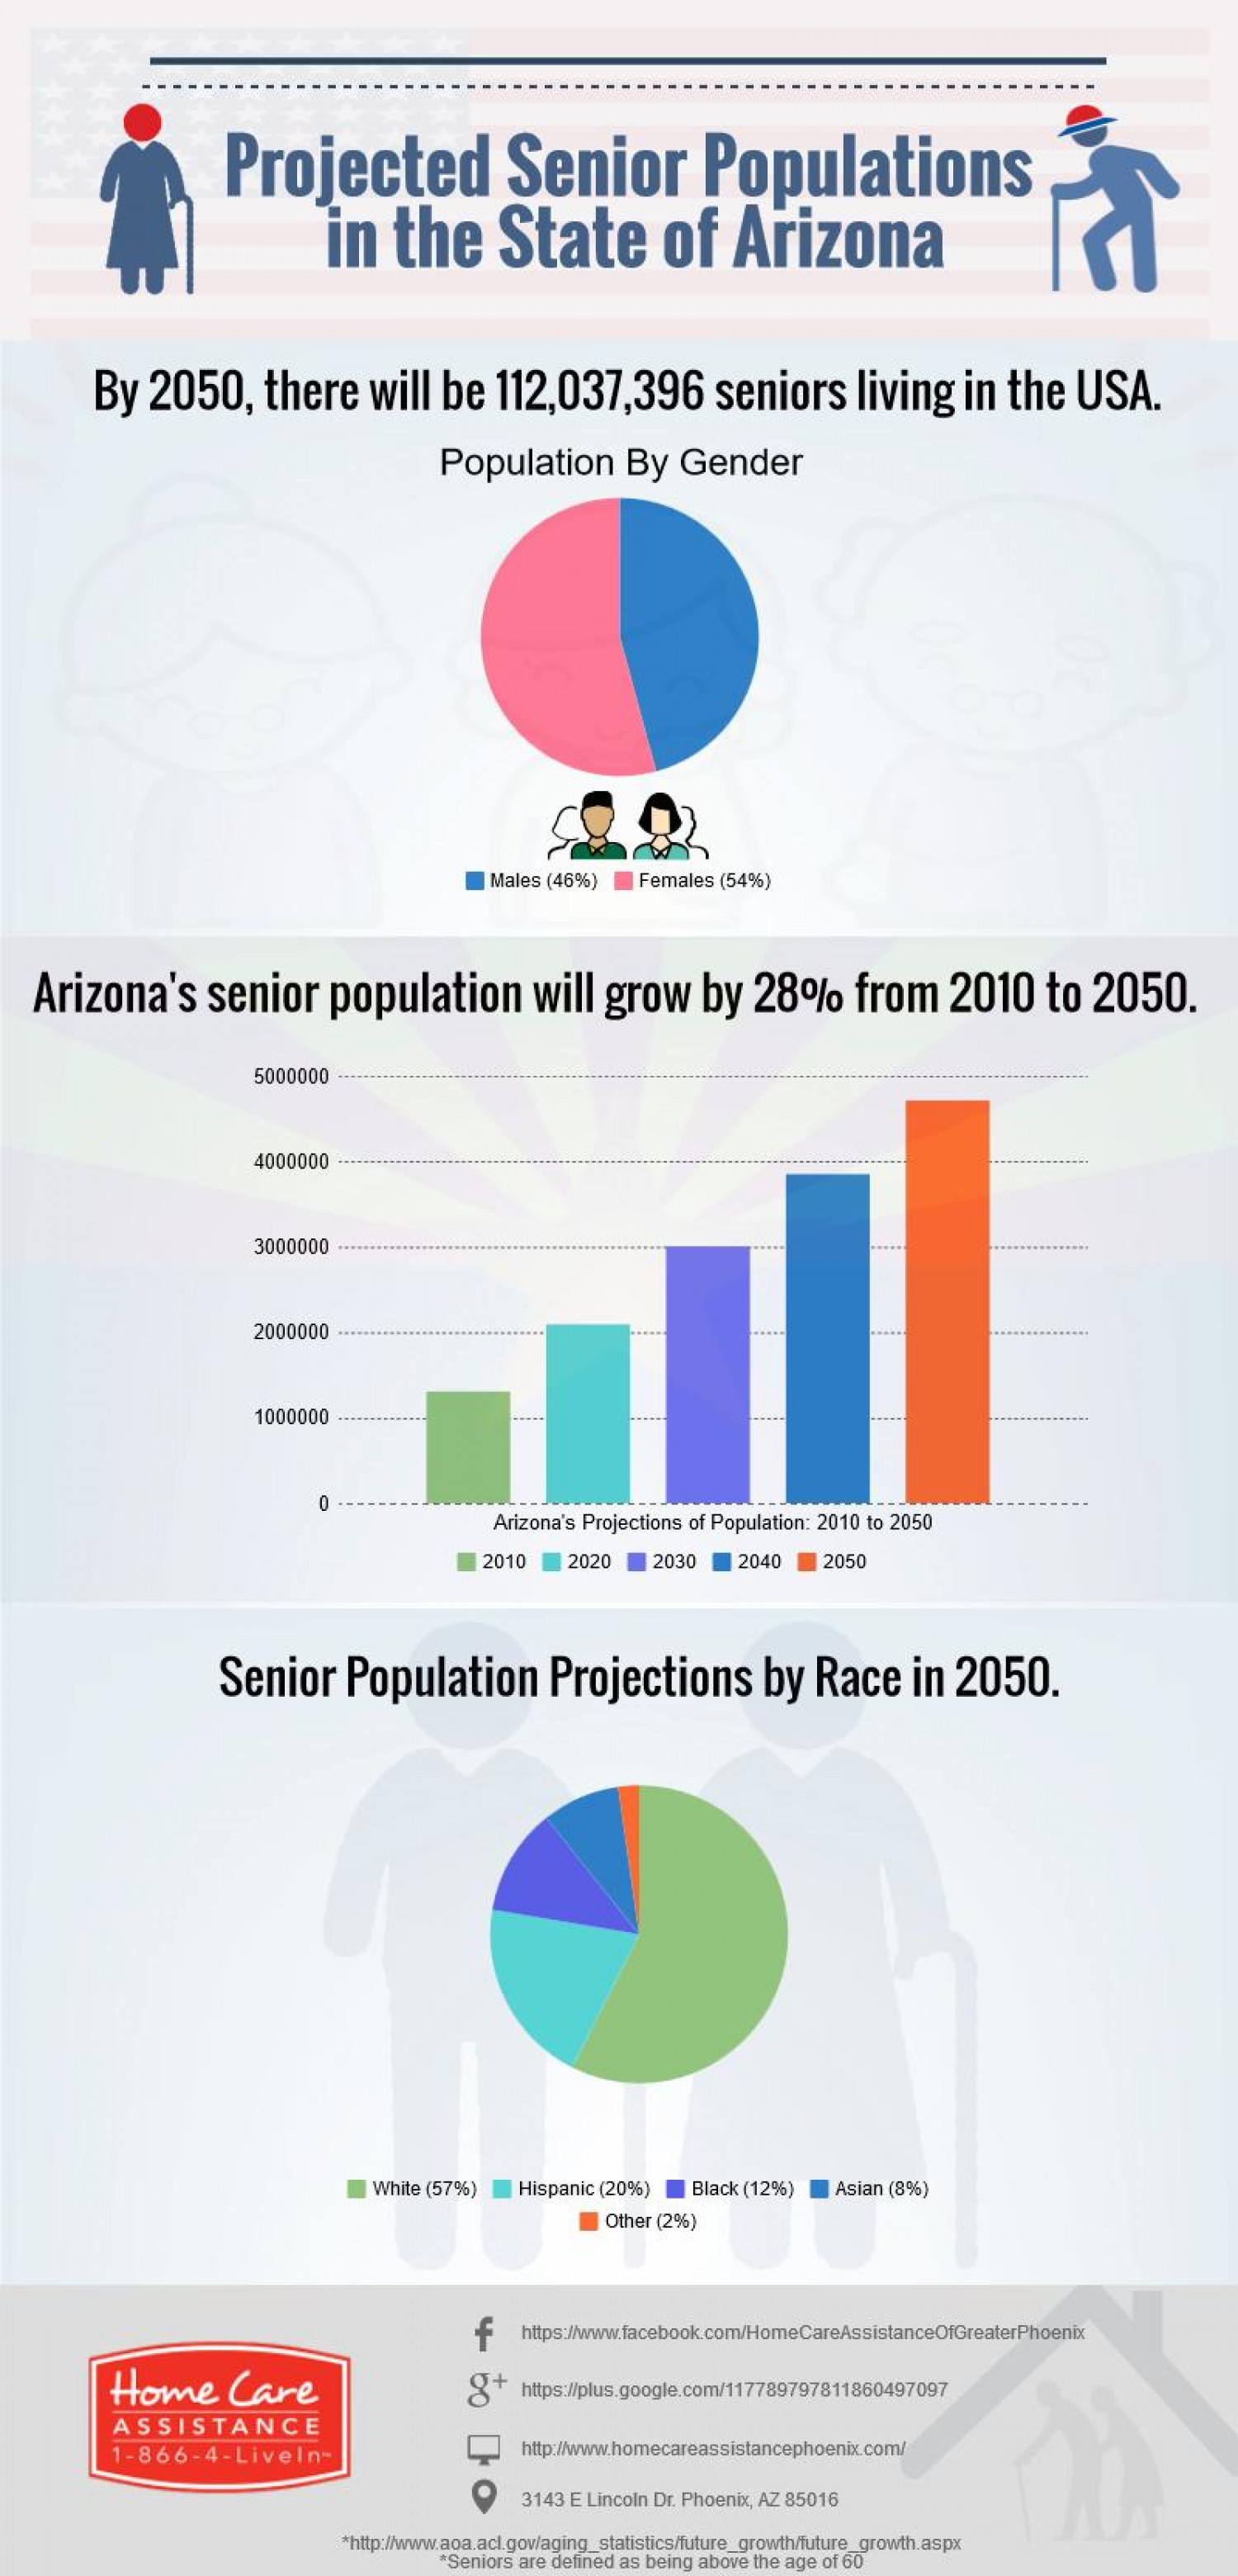 Projected Senior Populations in the State of Arizona [infographic] Infographic